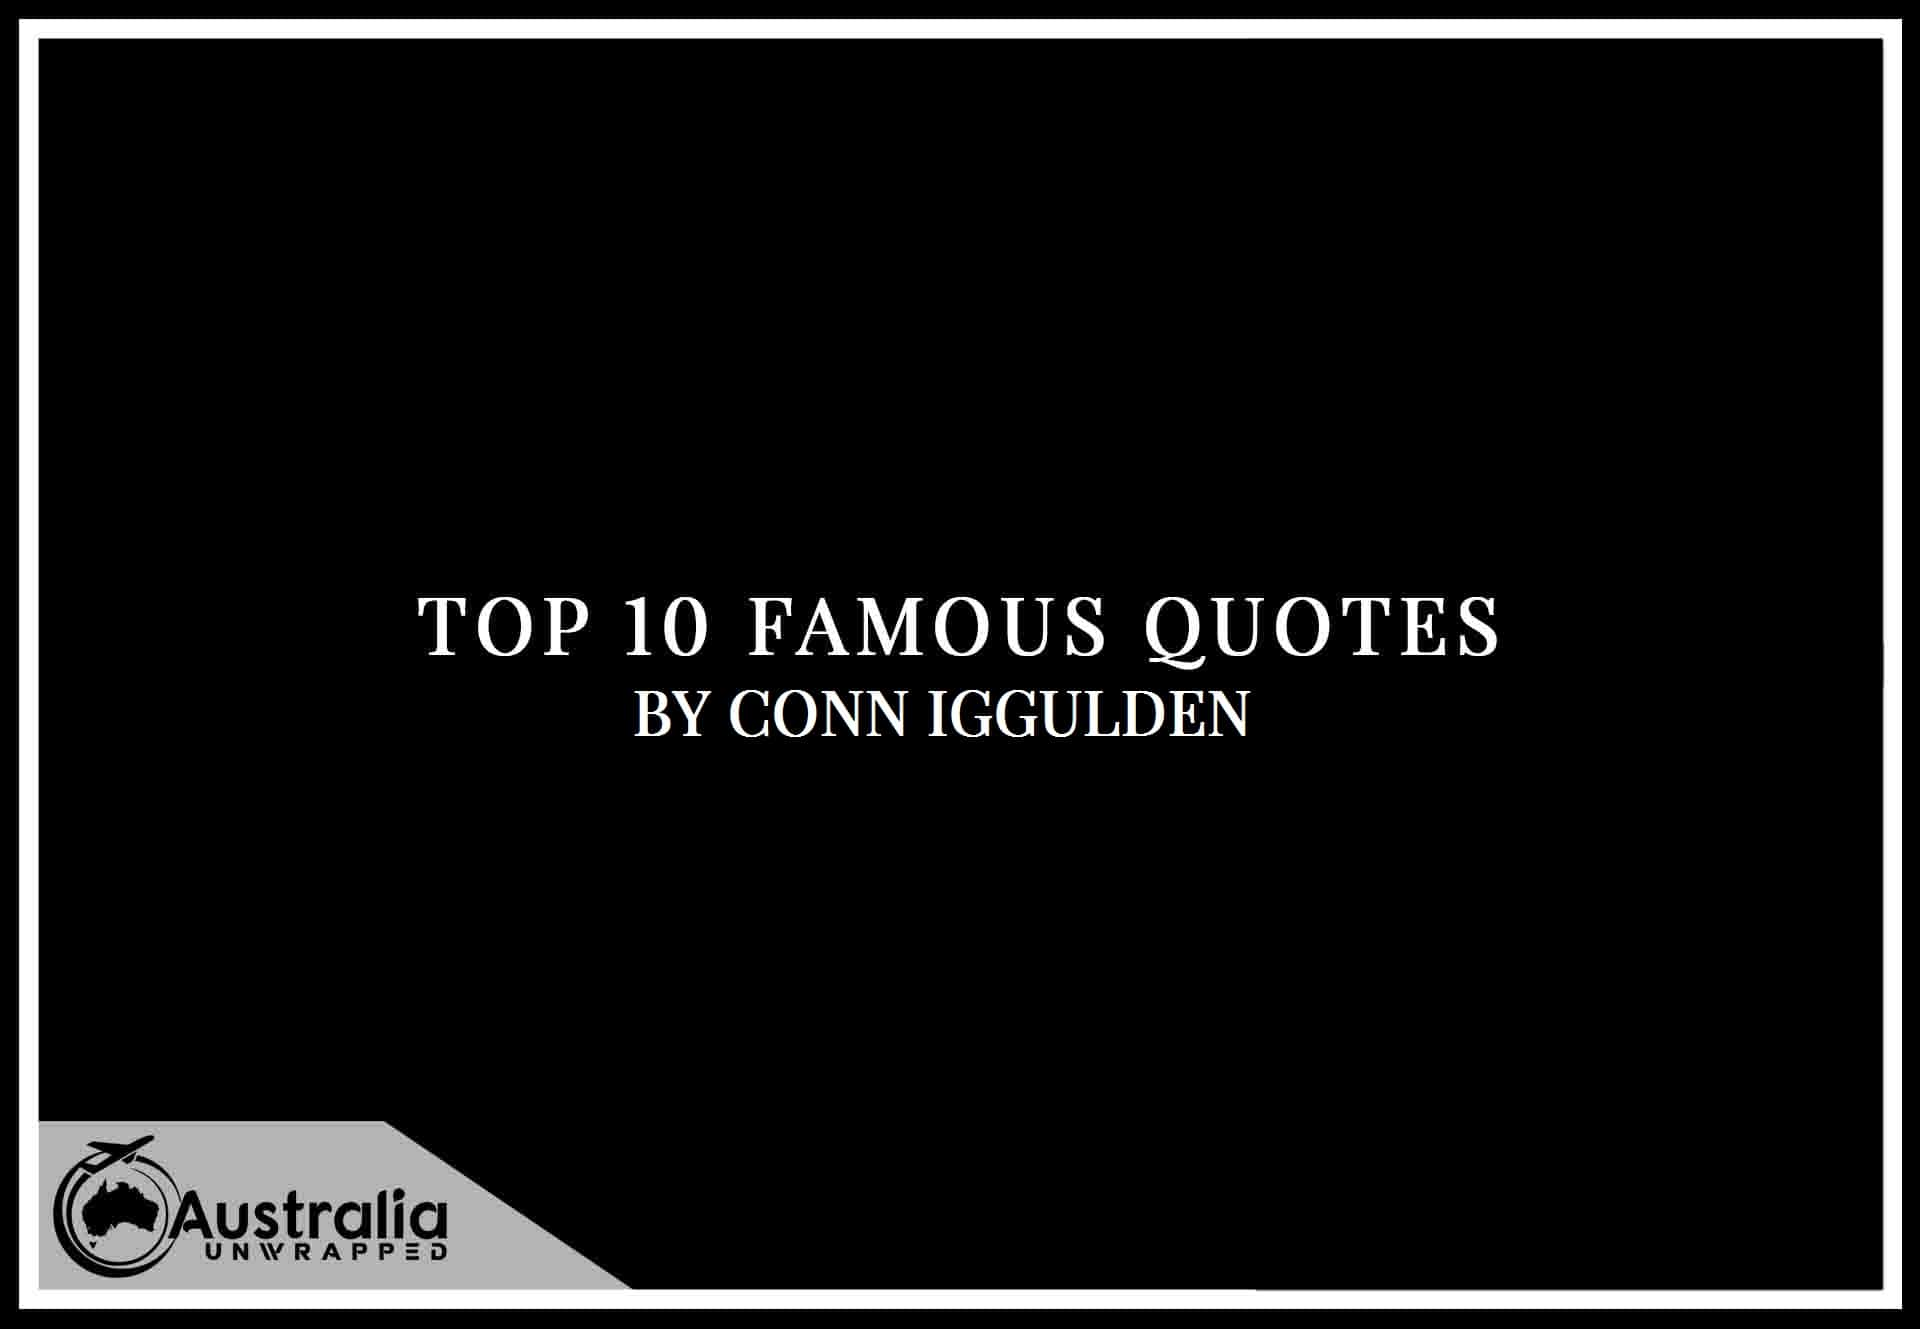 Conn Iggulden's Top 10 Popular and Famous Quotes